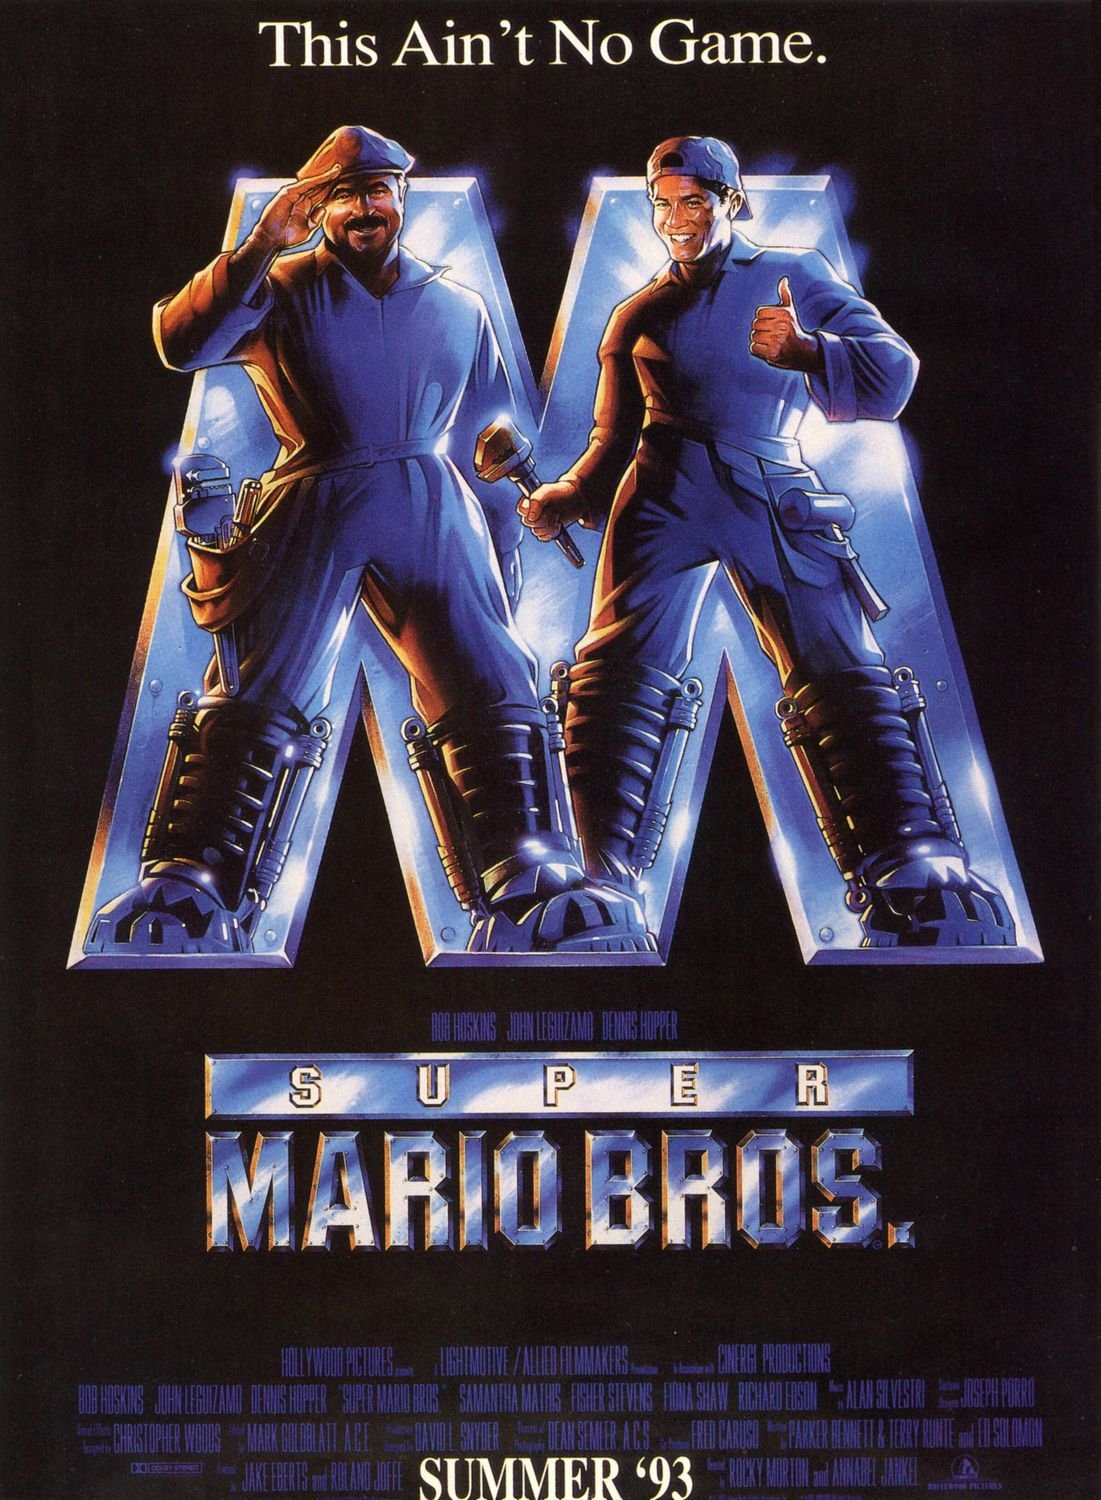 Super Mario Bros Bob Hoskins John Leguizamo Dennis Hopper Original Double Sided Rolled 27x40 Movie Poster 1993